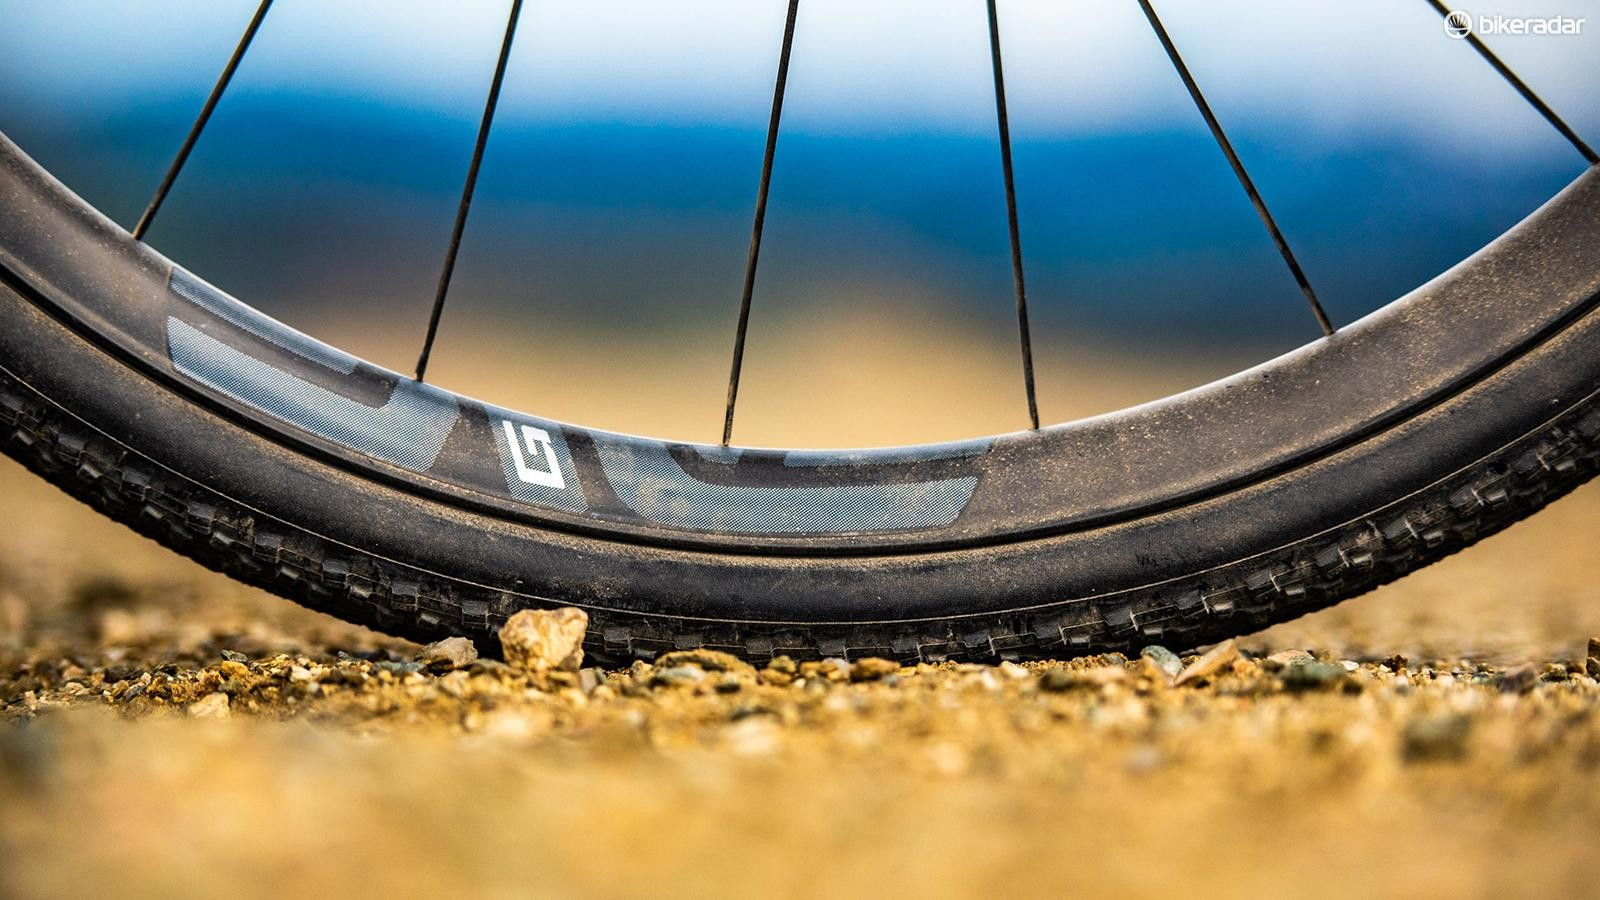 These new 700c and 650b rims are designed with more vertical compliance than ENVE's mountain bike rims